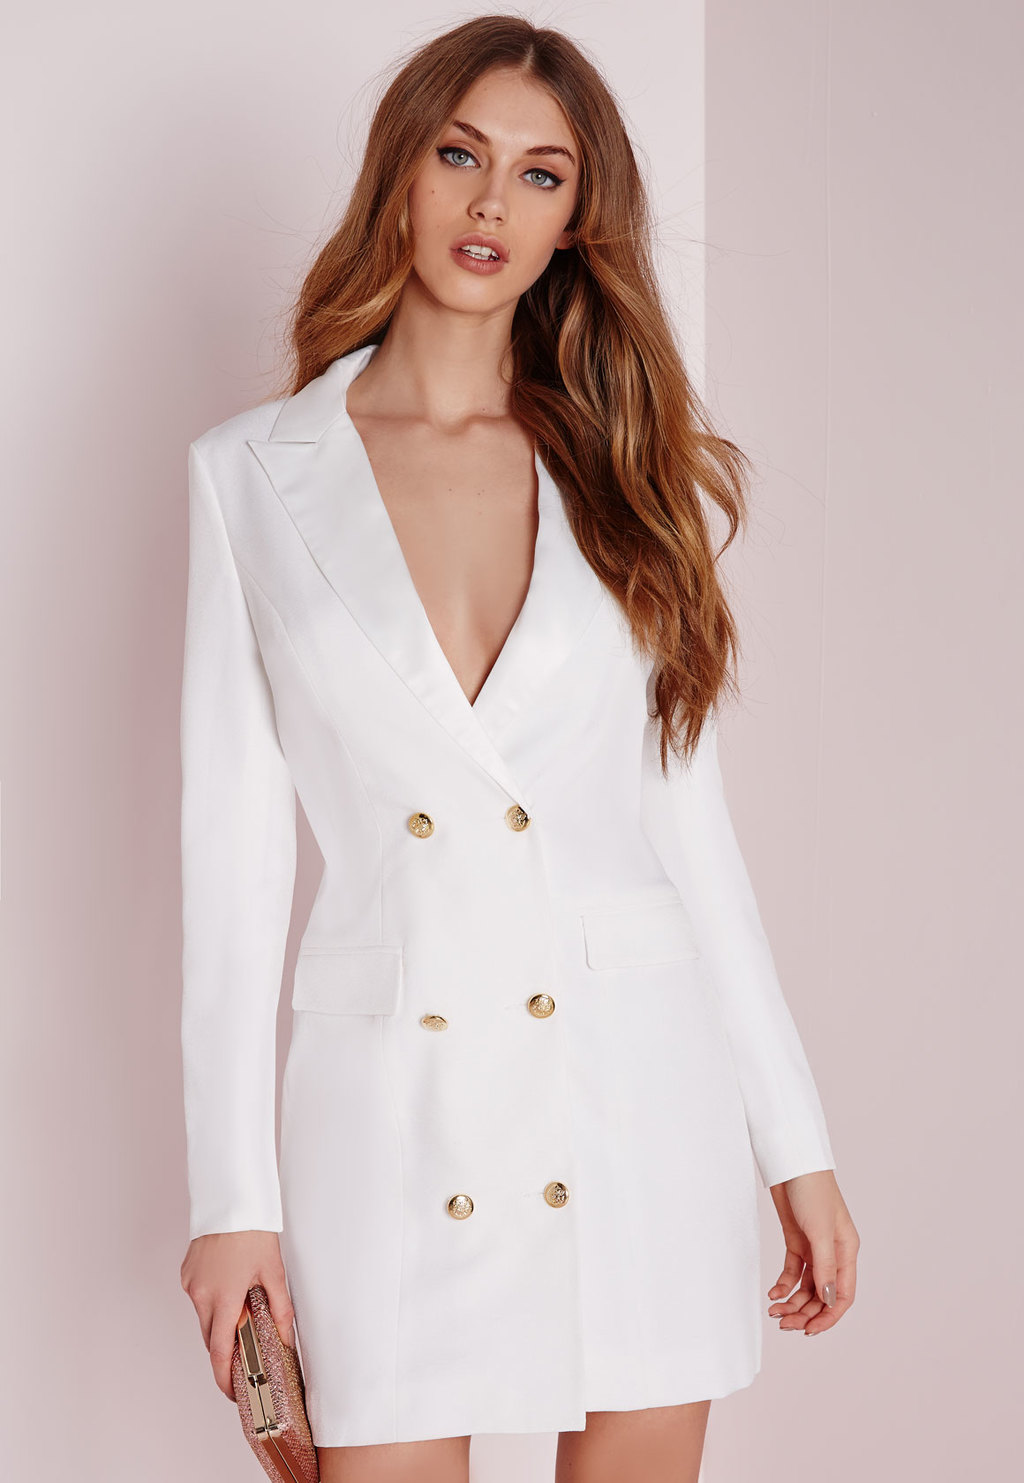 Long Sleeve Tuxedo Dress White, White - style: shift; length: mini; neckline: plunge; fit: tailored/fitted; pattern: plain; predominant colour: white; occasions: evening; fibres: polyester/polyamide - stretch; sleeve length: long sleeve; sleeve style: standard; pattern type: fabric; texture group: other - light to midweight; season: s/s 2016; wardrobe: event